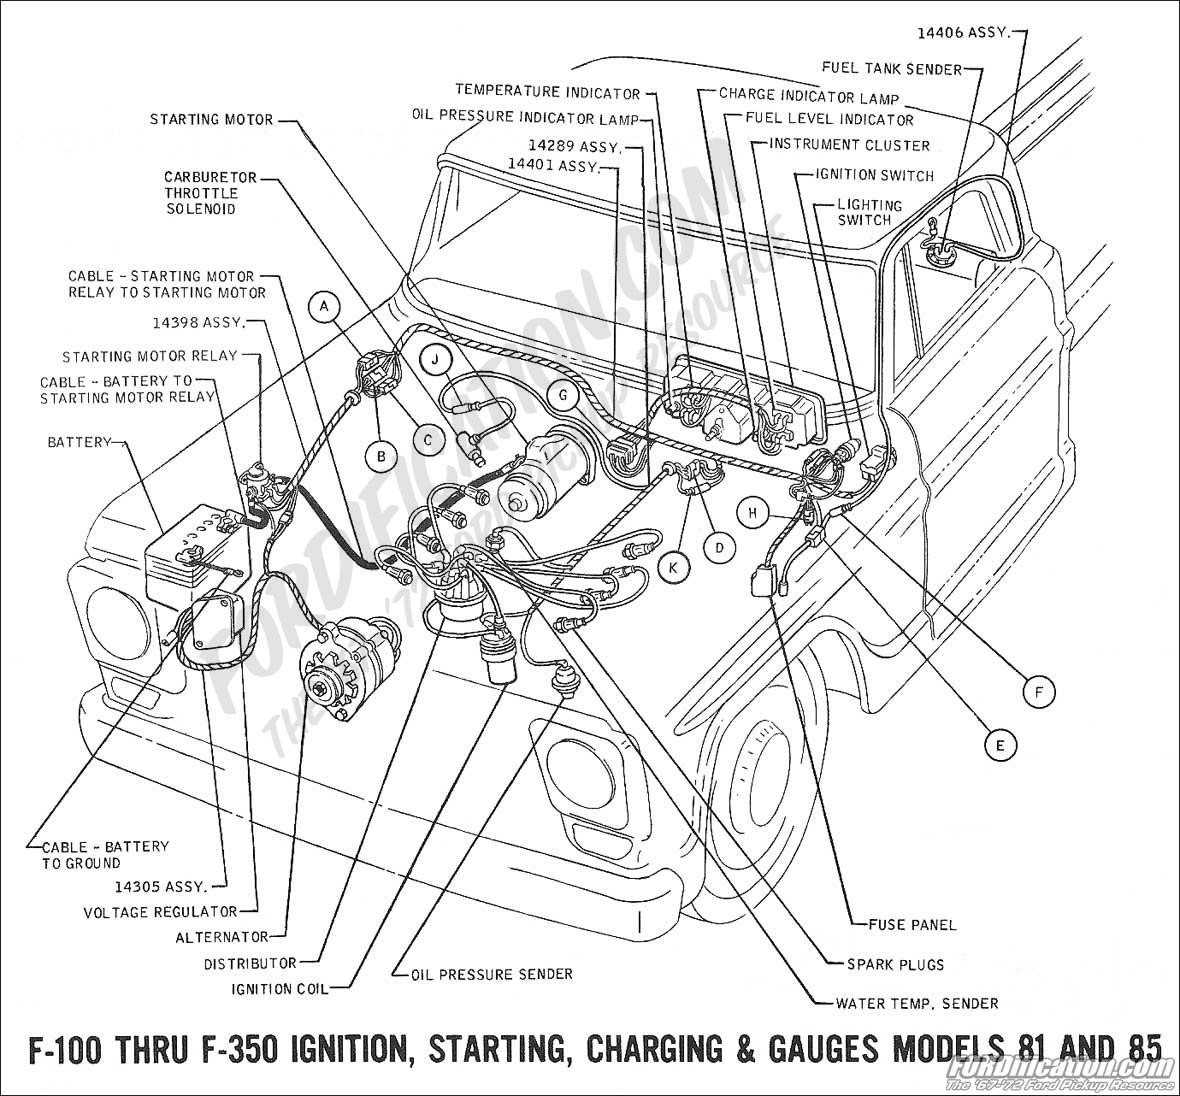 wiring 1969charging 69 f100 wiring diagram 1973 ford f100 wiring diagram \u2022 wiring 1966 ford truck wiring diagram at n-0.co